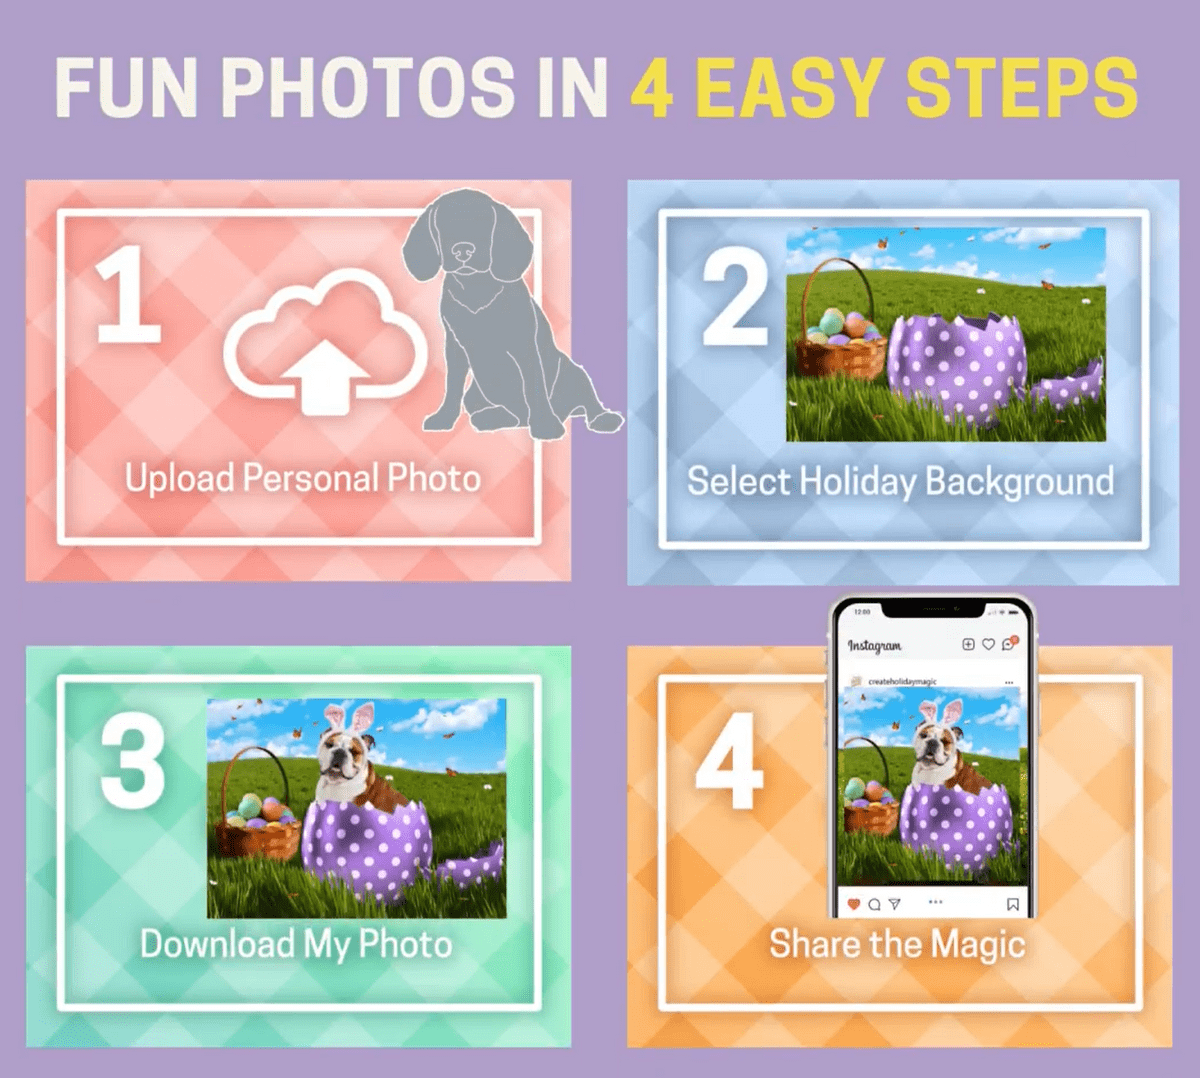 fun photos in 4 easy steps. 1. upload personal photo 2. select holiday background 3. download my photo 4. share the magic.